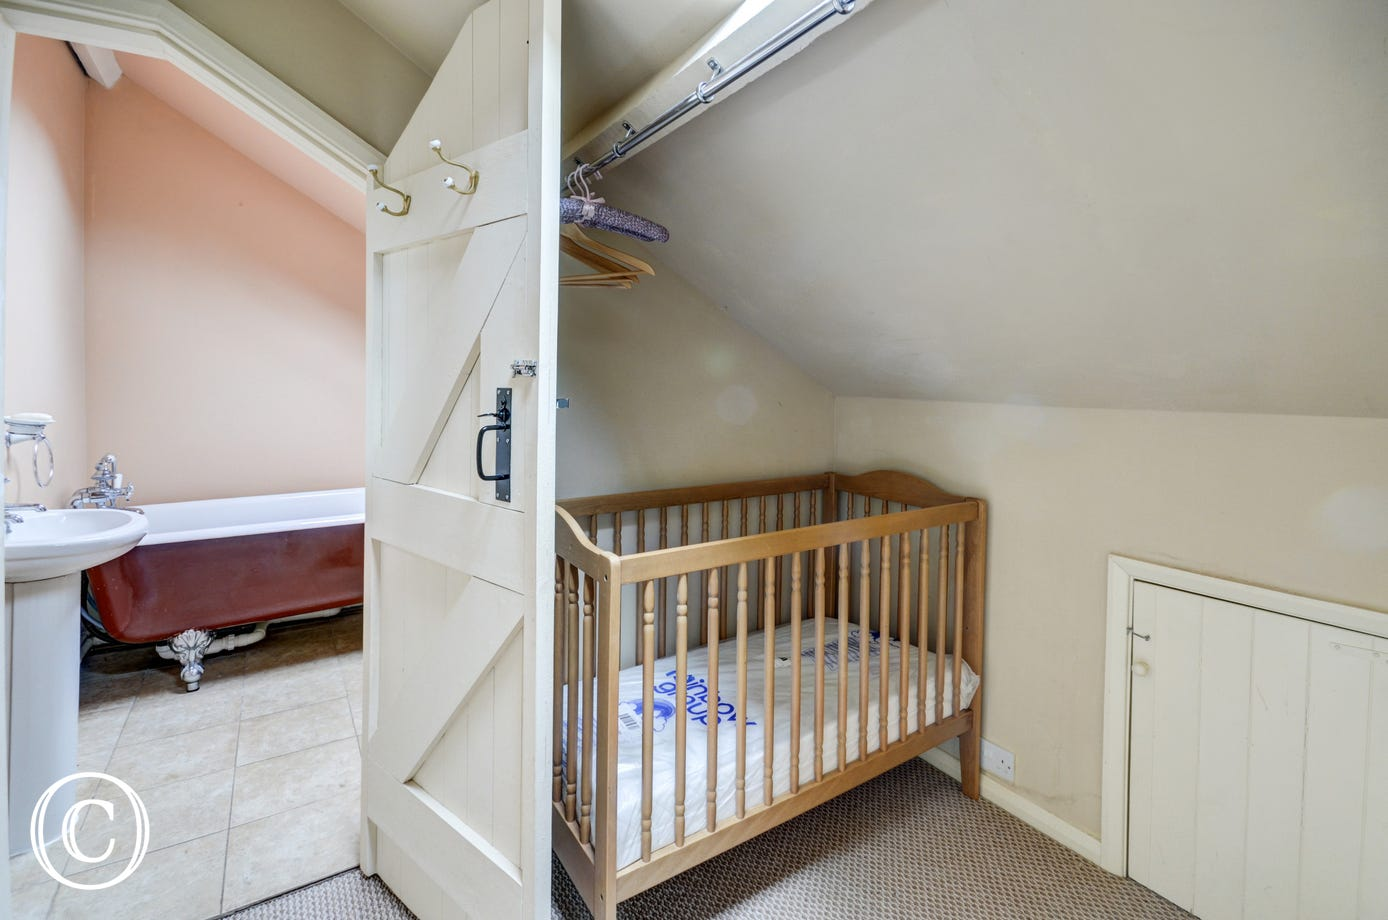 Space for the cot off from the master bedroom